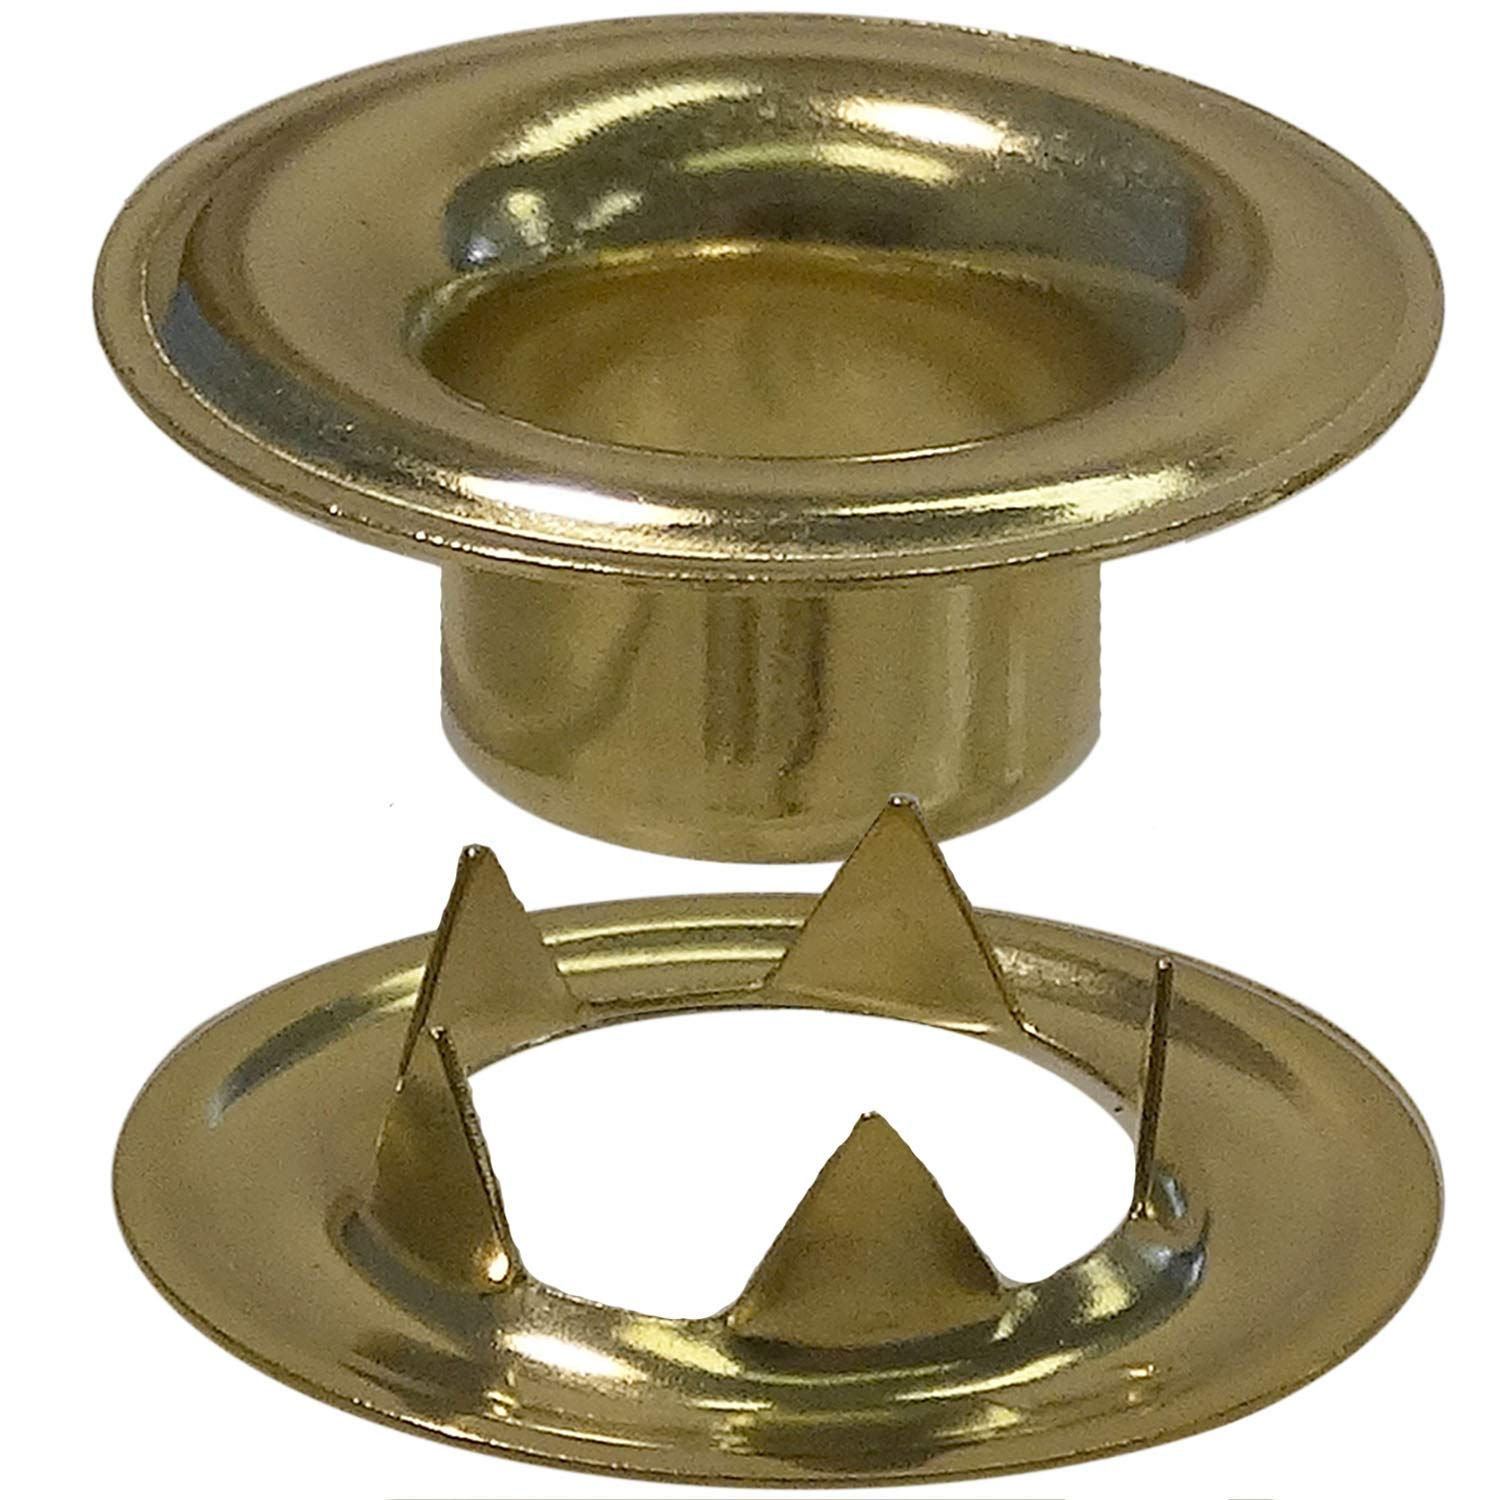 Stimpson Sheet Metal Grommet and Teeth Washer Brass Durable, Reliable, Heavy-Duty #0 Set (14,400 Pieces of Each) by Stimpson Co., Inc. (Image #1)